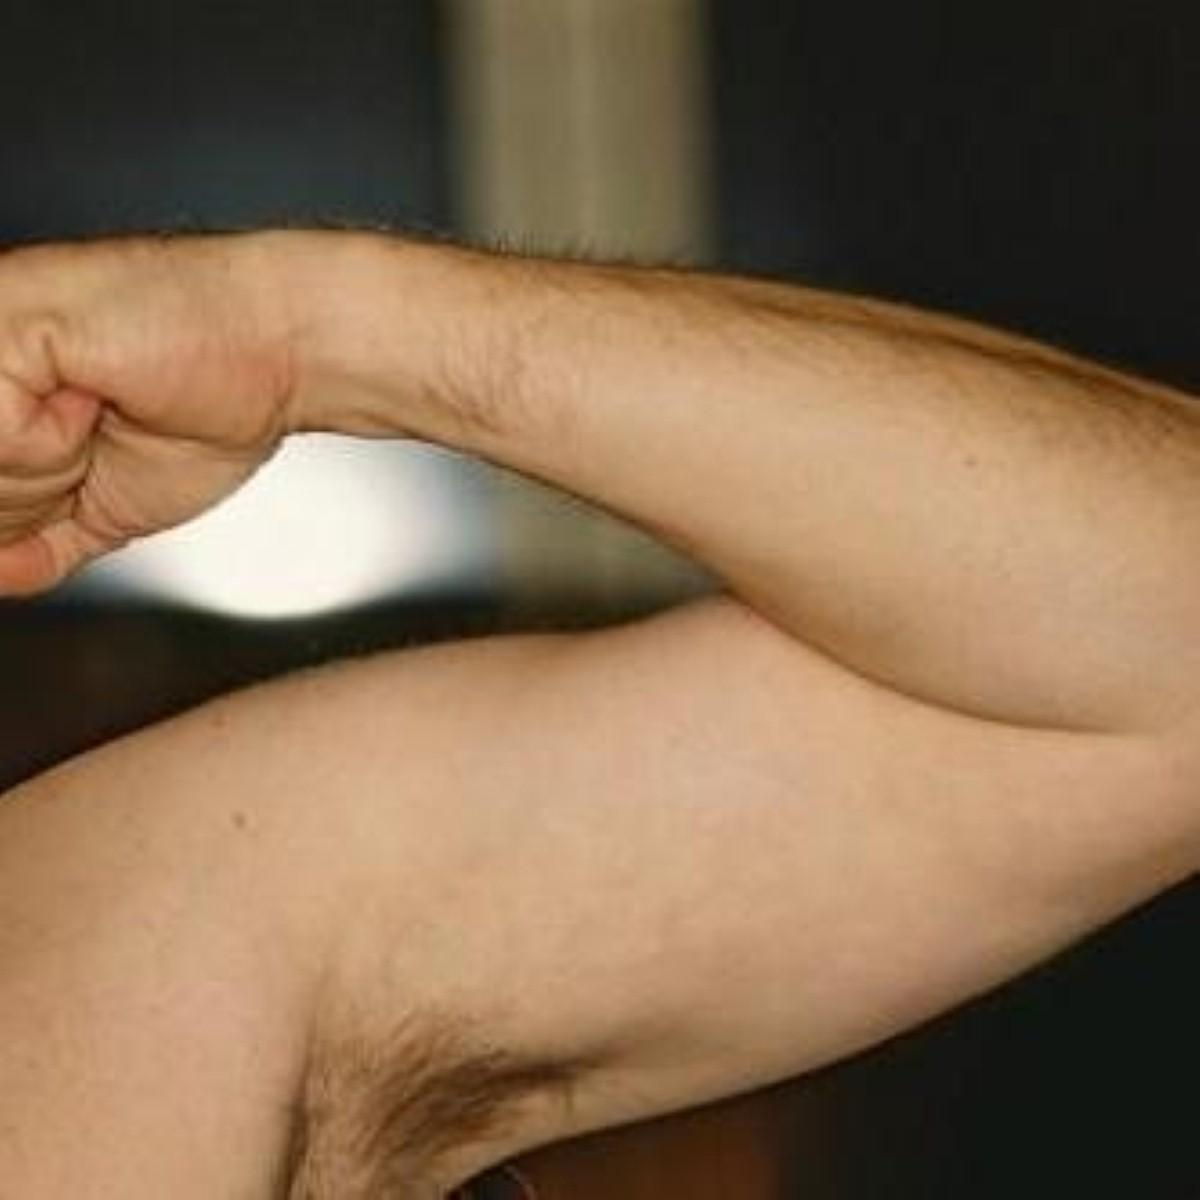 Muscle strength 'associated with difficulty performing daily tasks'